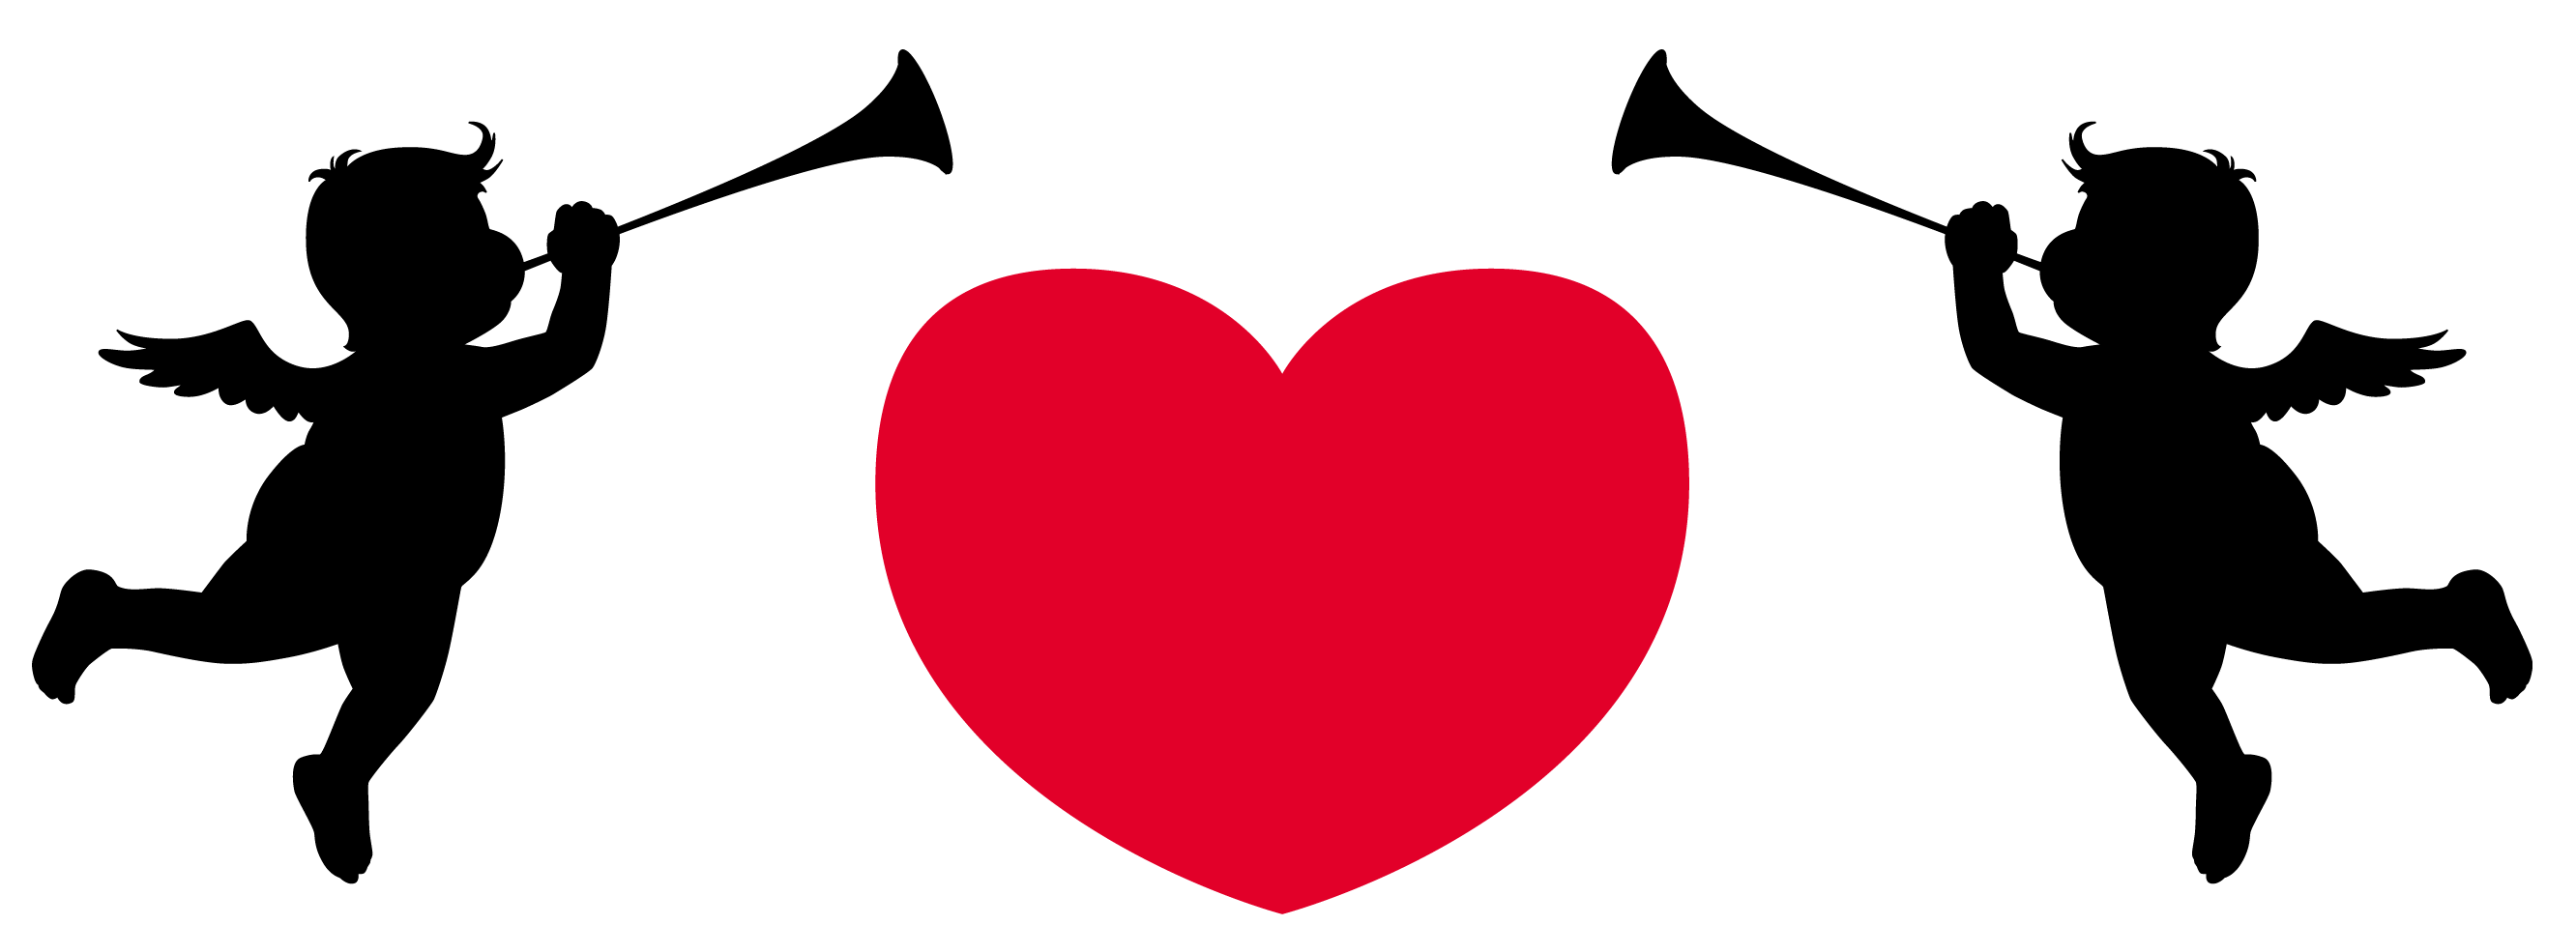 Cupid heart clip art.